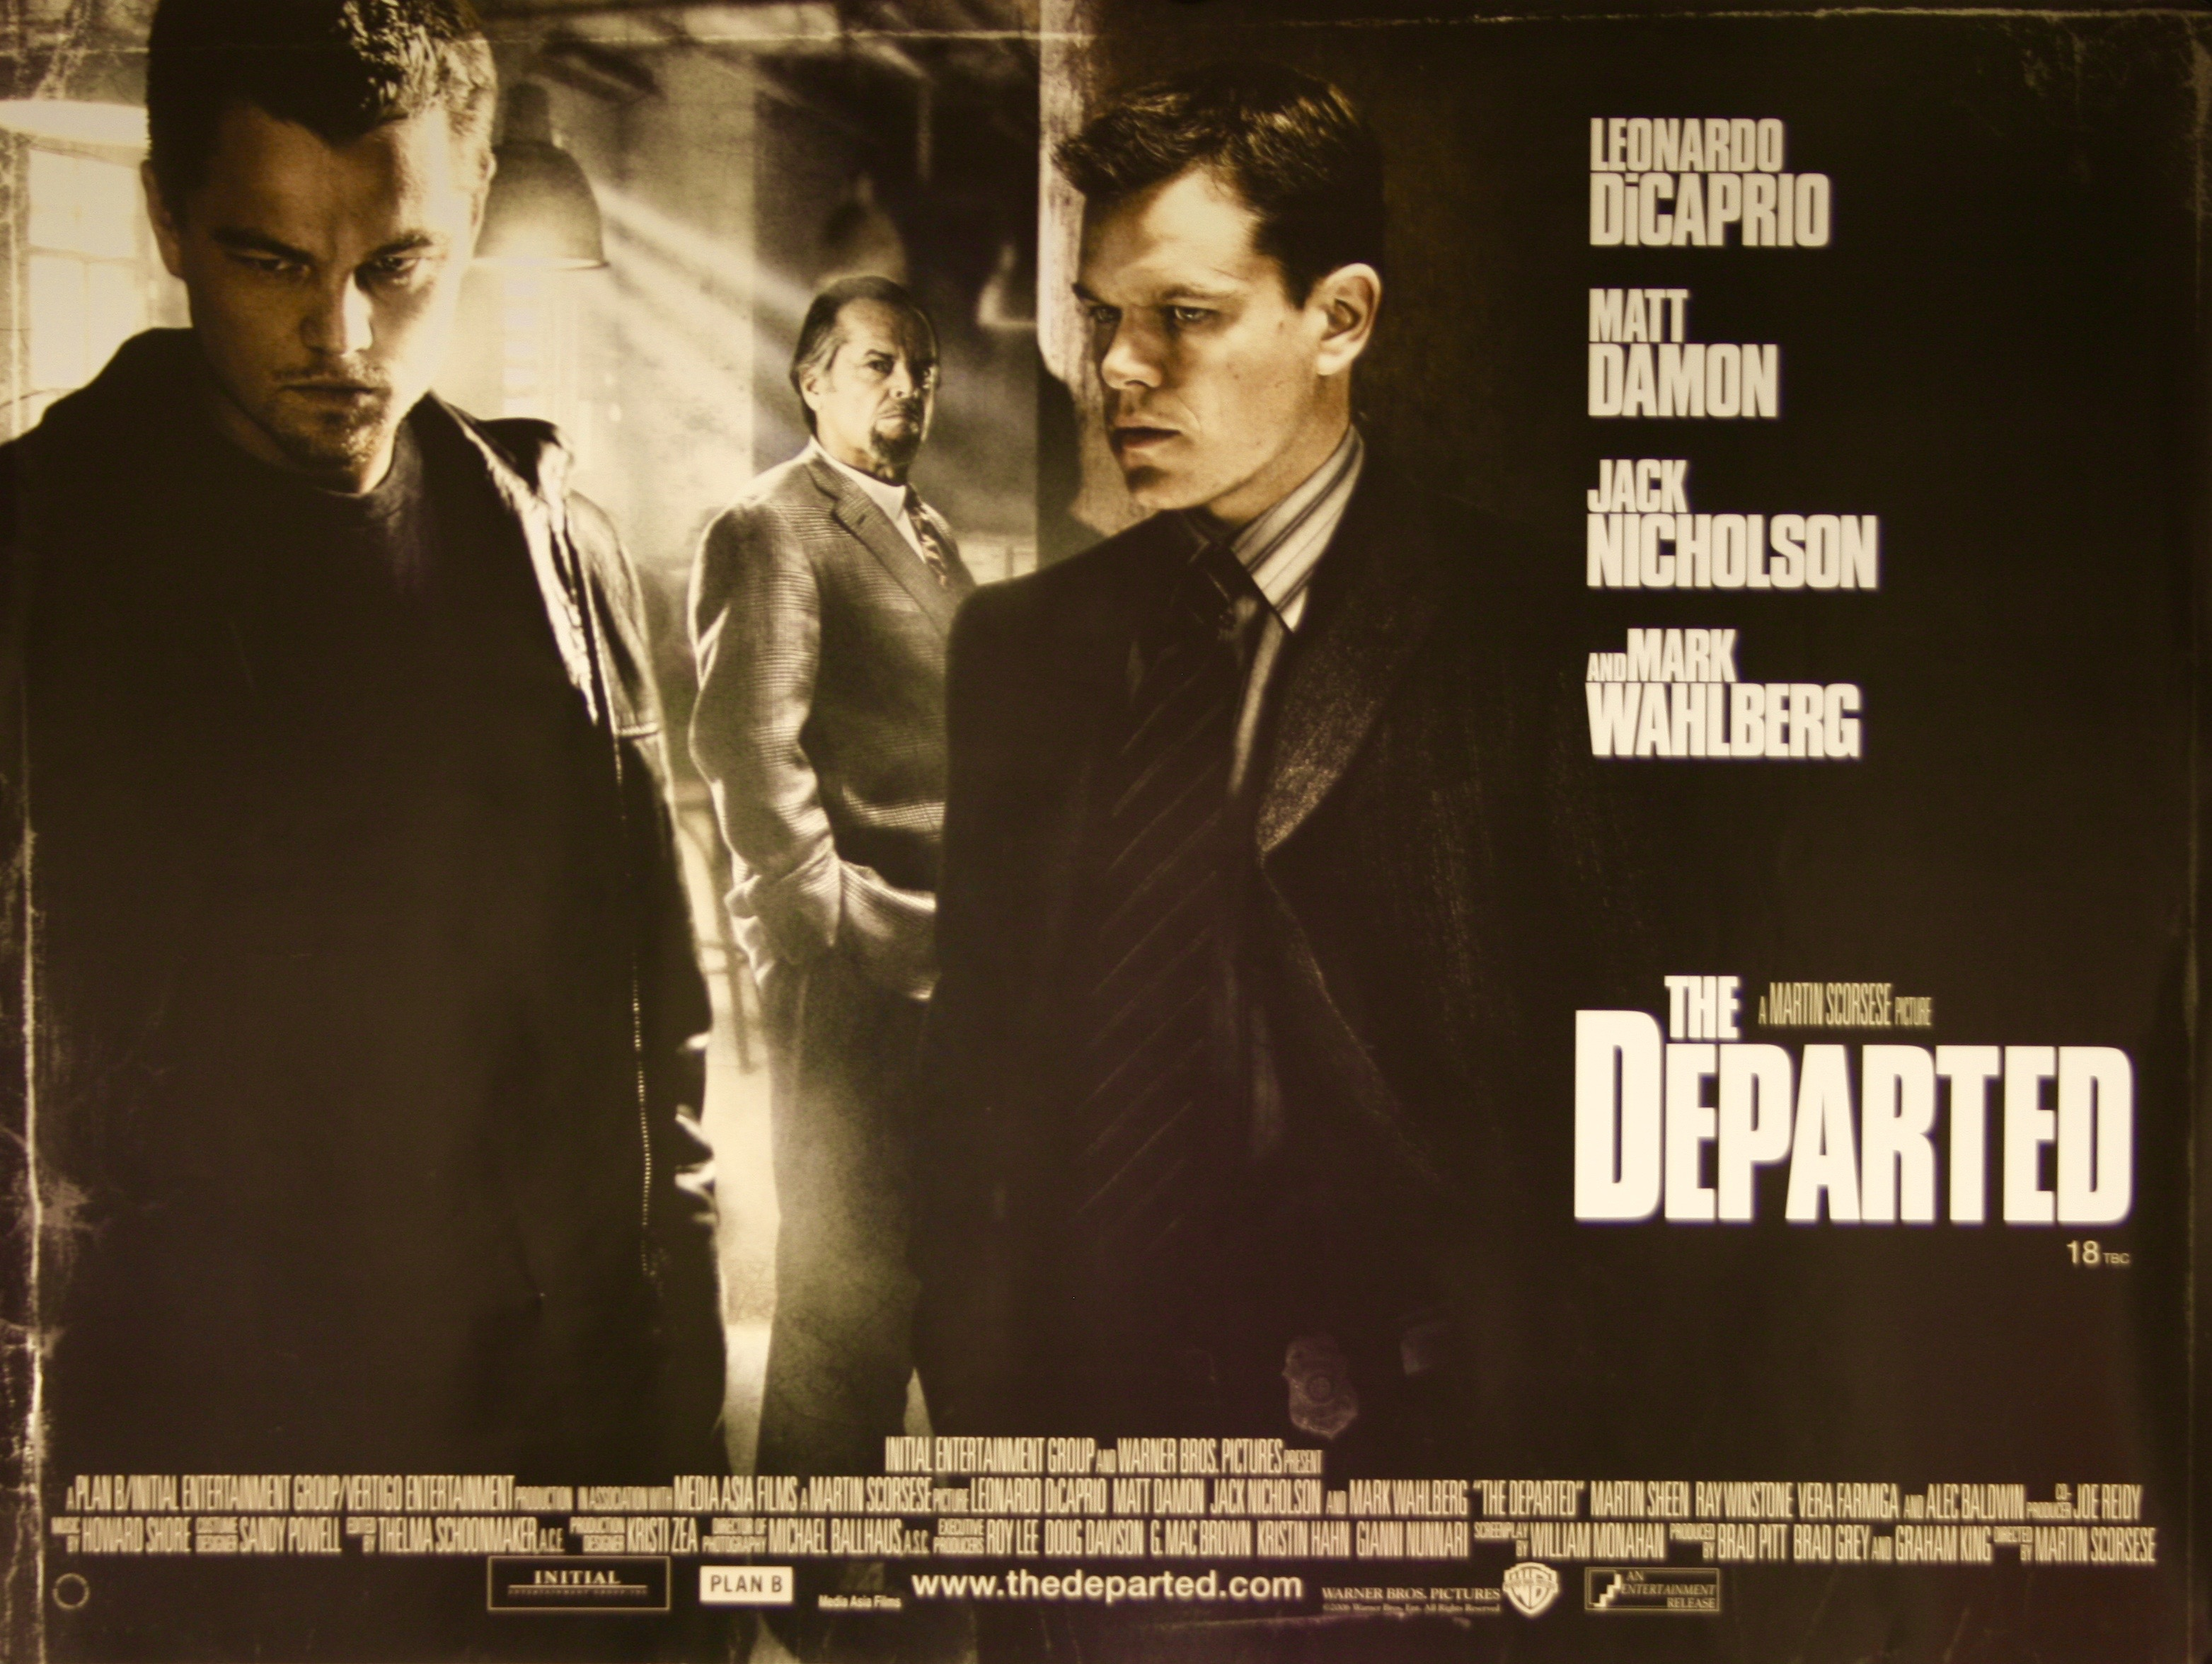 The-Departed-Movie-Poster